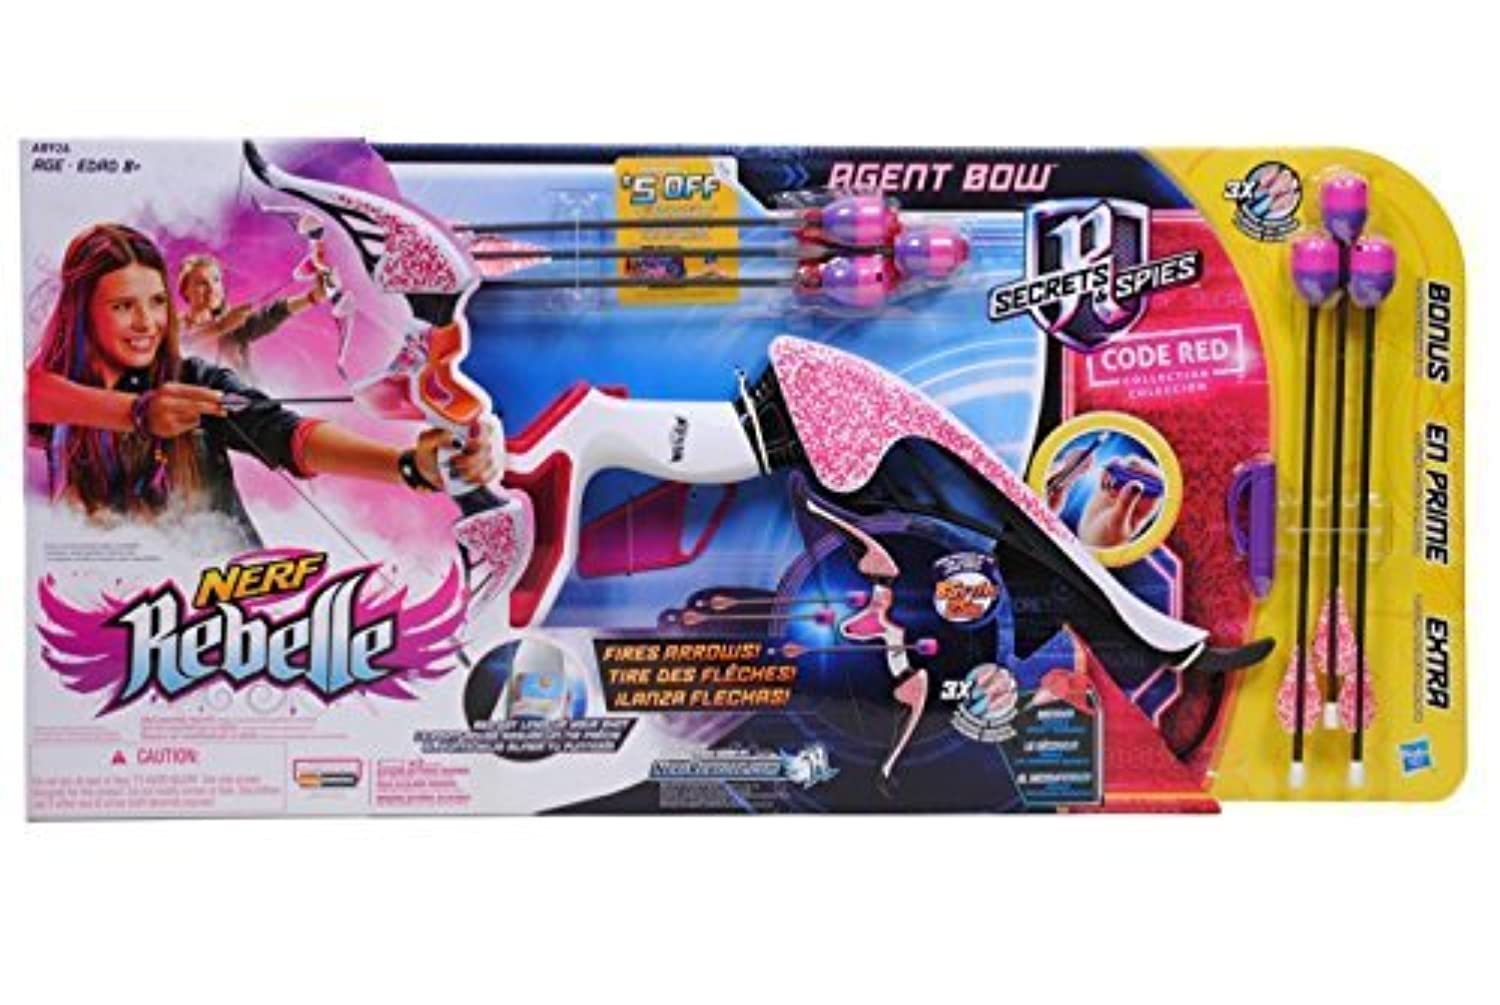 Nerf Rebelle Agent Bow Blaster Exclusive Code Red Collection [並行輸入品]